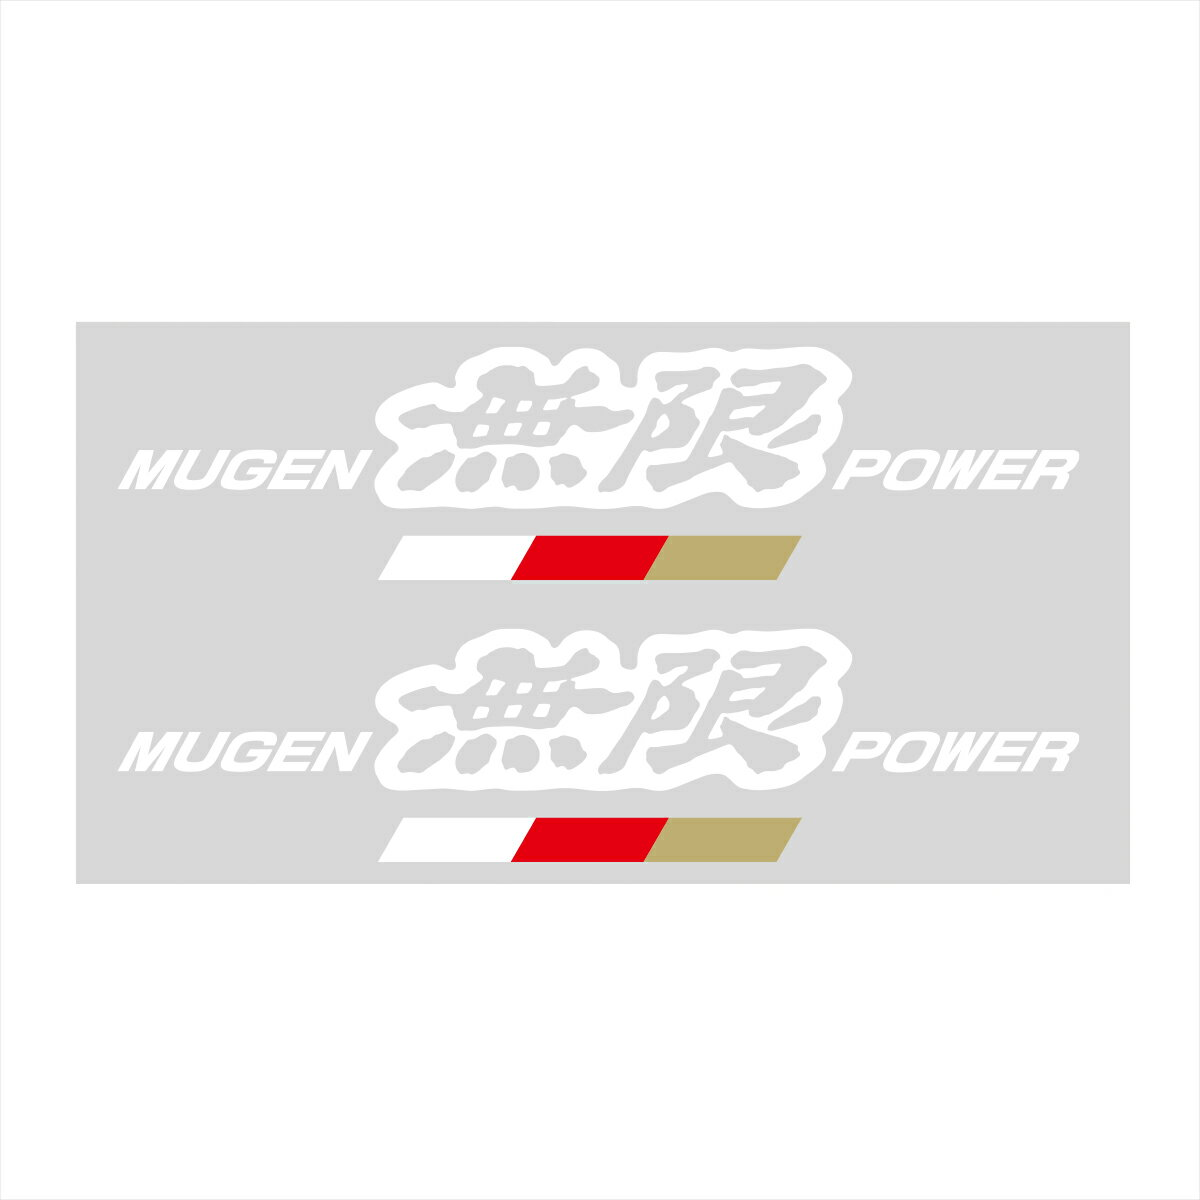 MUGEN POWER STICKER A SIZE:LL